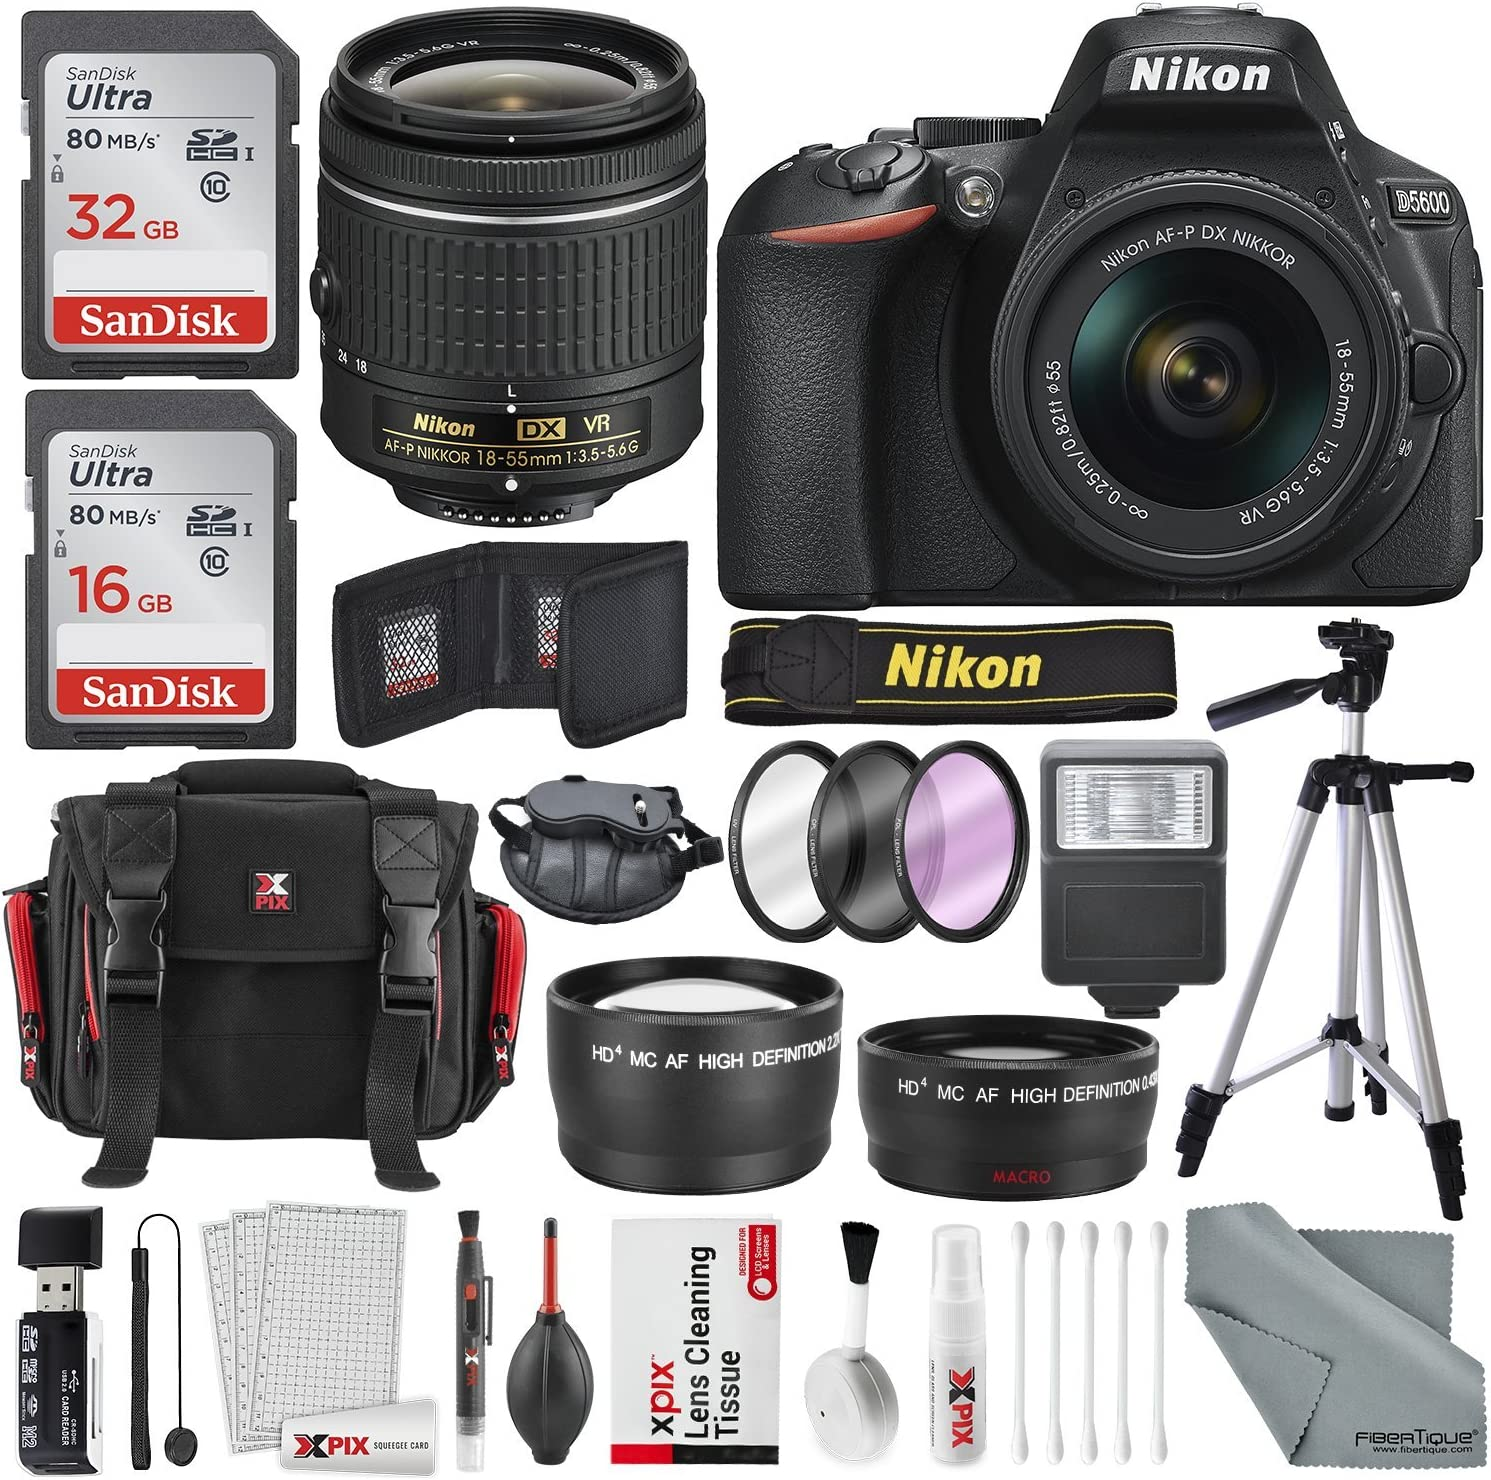 Nikon D5600 DSLR Camera And 18-55mm Lens Max 54% OFF Kit M of GB Total 48 W Cash special price